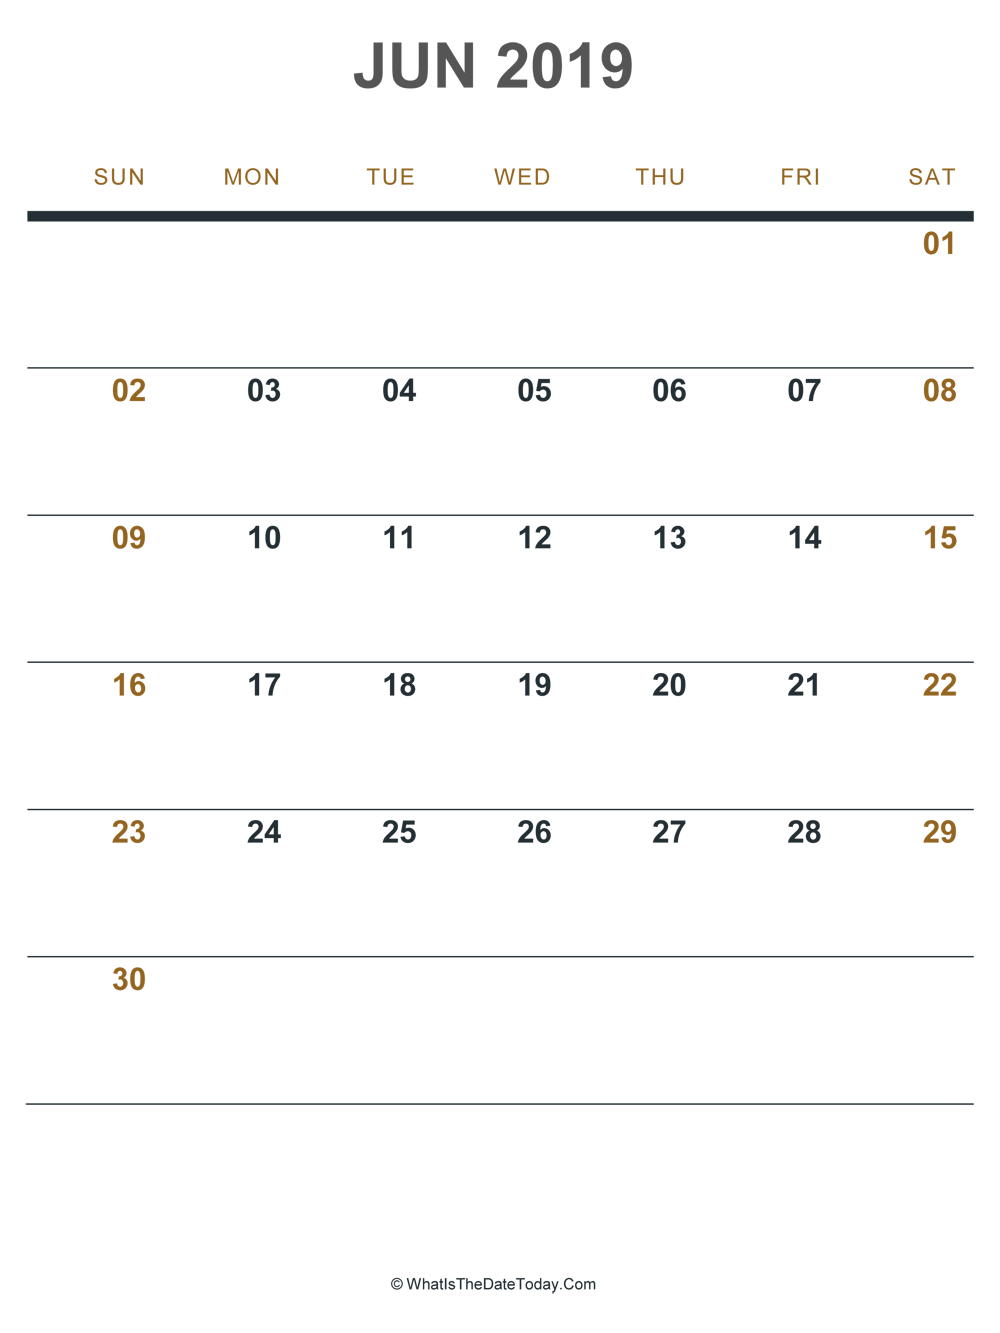 image about June Printable Calendar known as June 2019 Printable Calendar (Portrait Structure